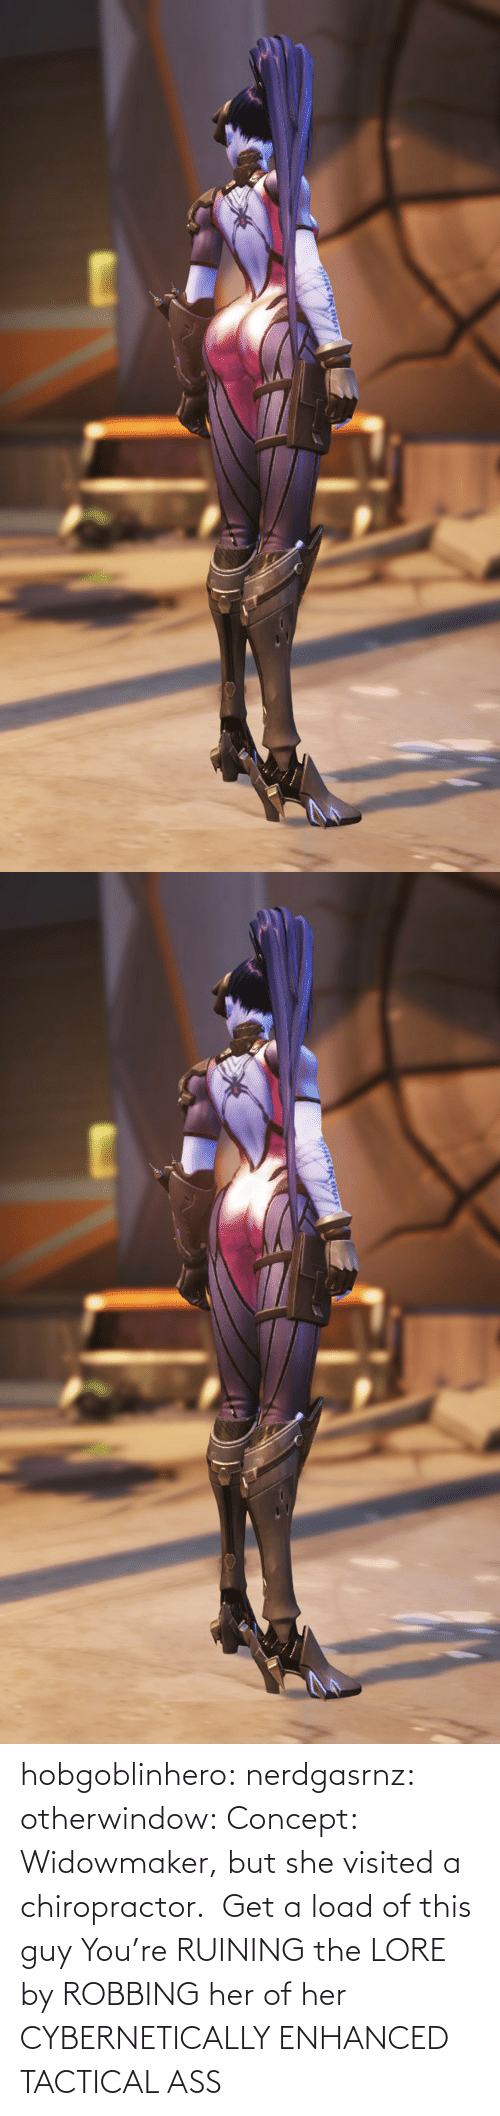 this guy: hobgoblinhero: nerdgasrnz:  otherwindow: Concept: Widowmaker, but she visited a chiropractor.  Get a load of this guy  You're RUINING the LORE by ROBBING her of her CYBERNETICALLY ENHANCED TACTICAL ASS